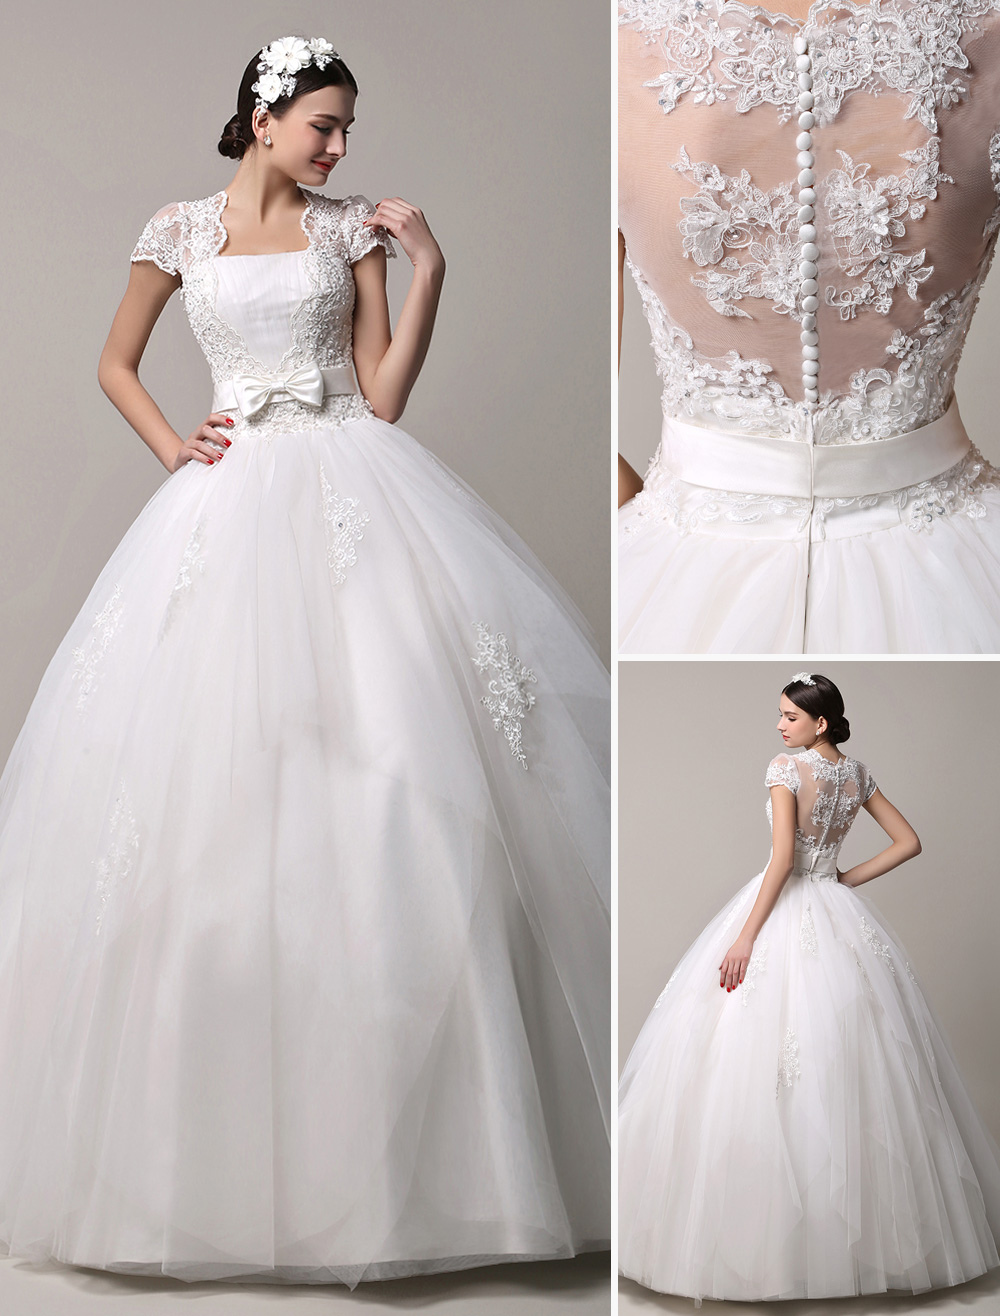 Short Sleeve Lace Princess Wedding Dress with Layered Tulle Skirt ...